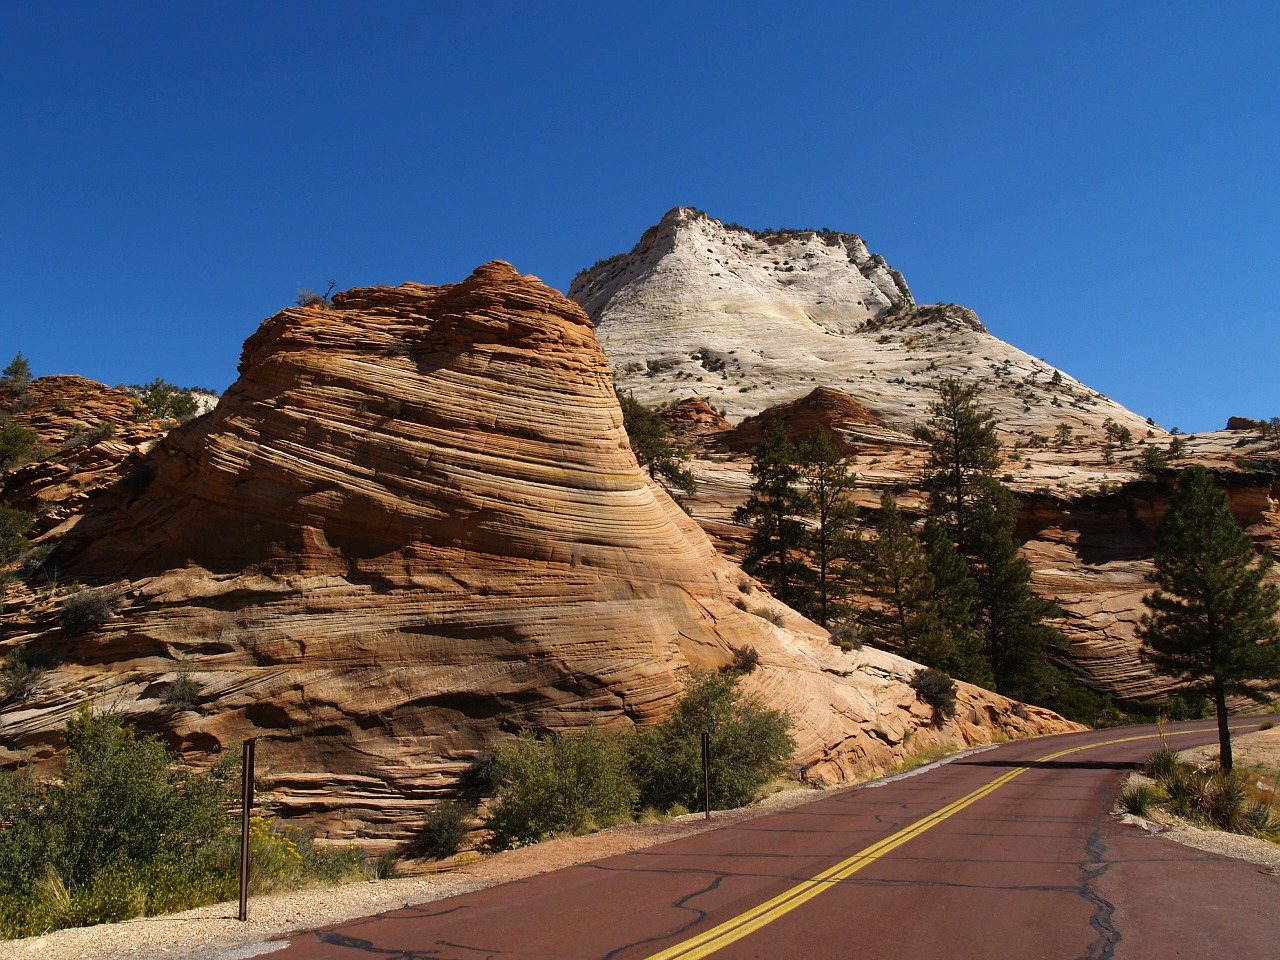 zion national park utah usa free photo